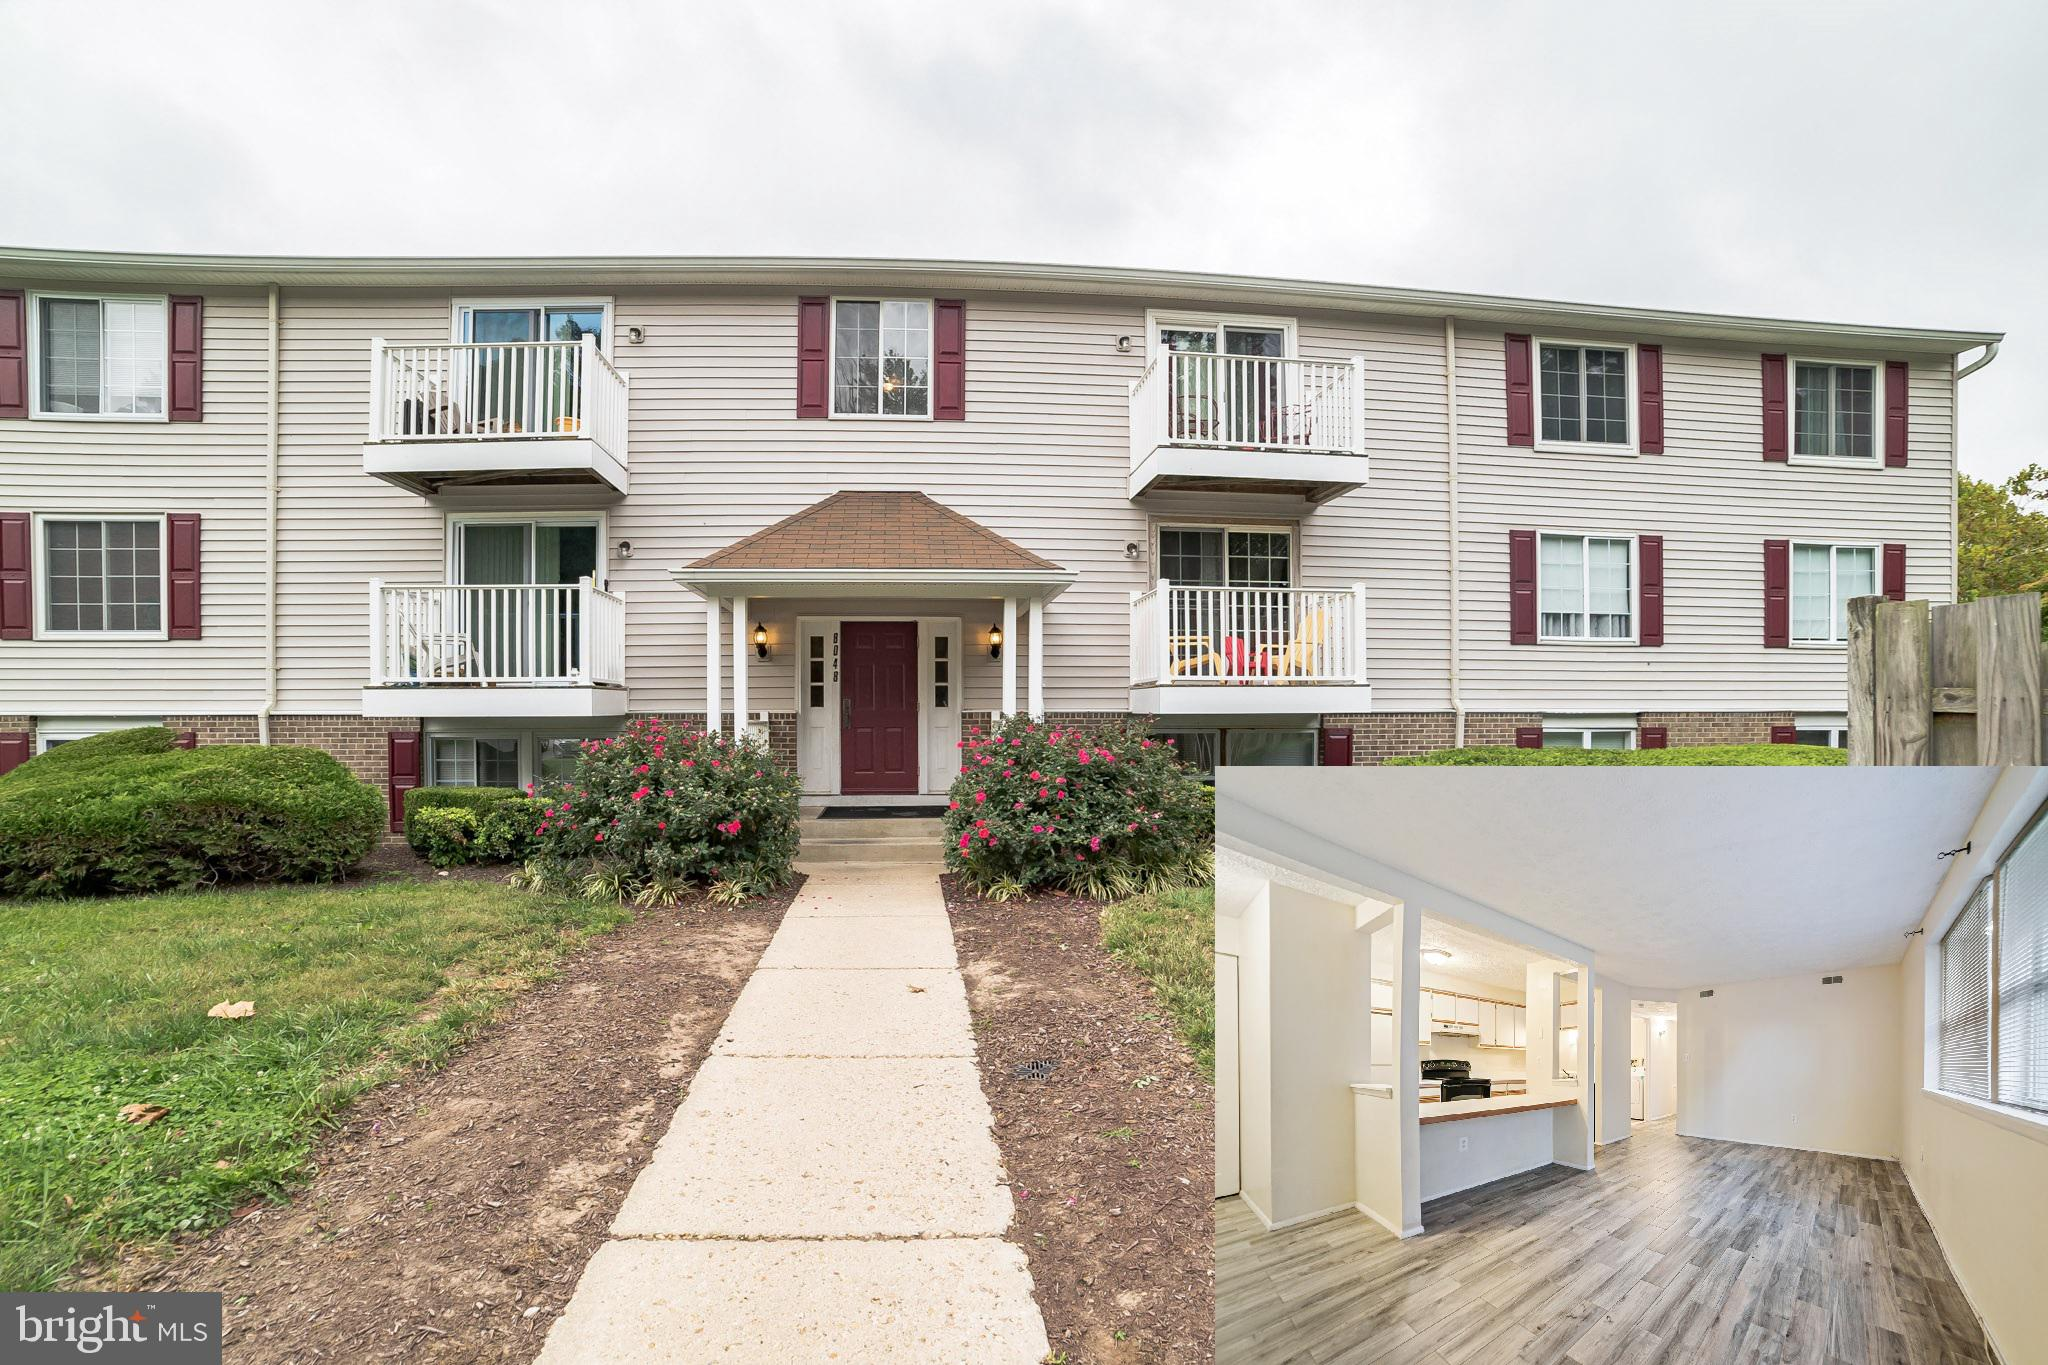 Come tour this affordable 2 bedroom condo in Chesterfield Garden. This unit is conveniently located